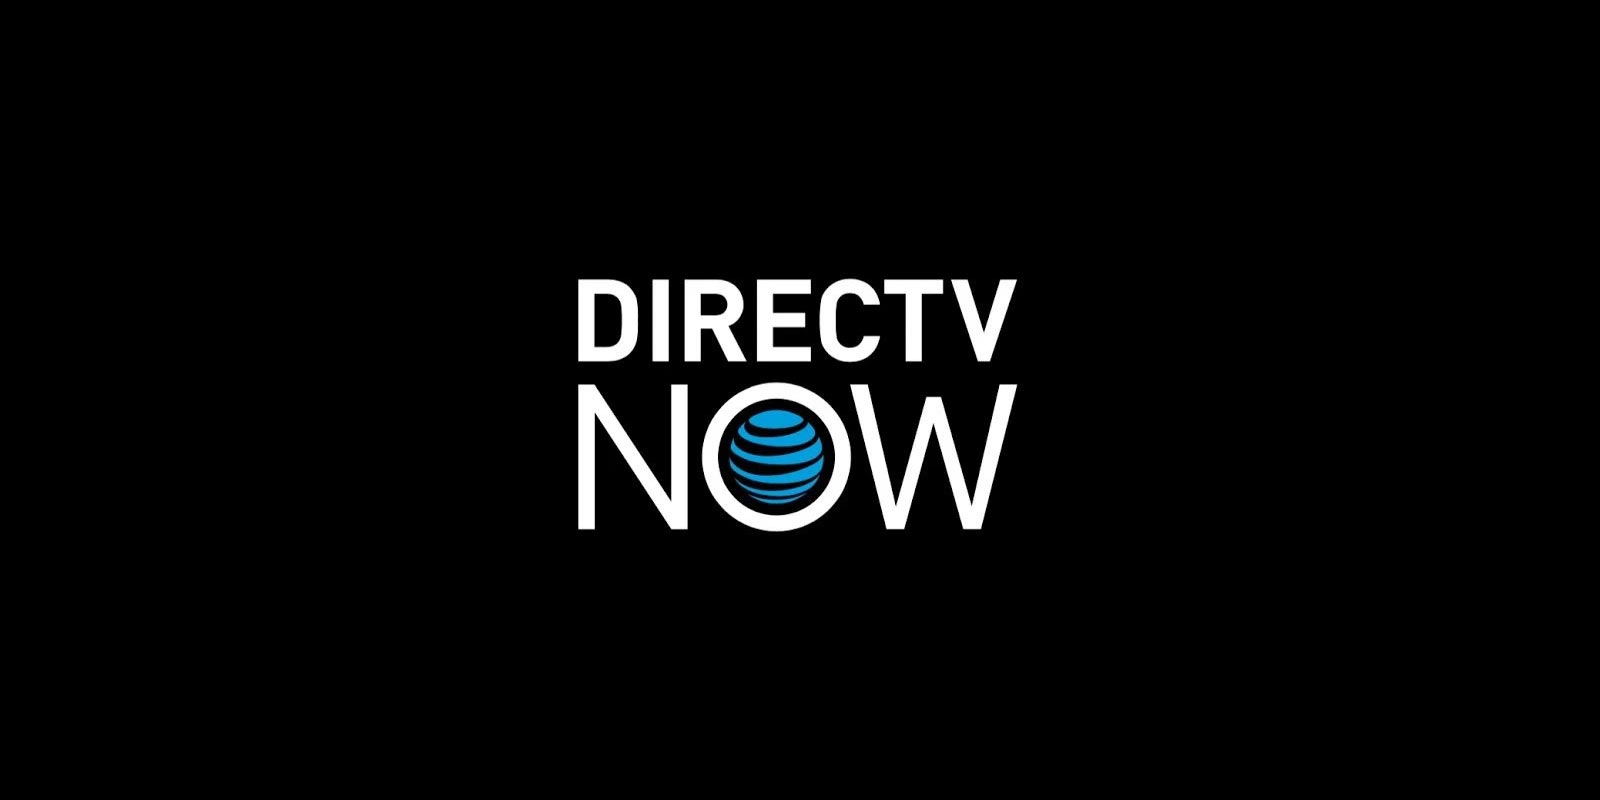 image relating to Printable Directv Now Channel Guide referred to as DirecTV Currently - Systems, Channels, Pricing 2019 (Just about anything